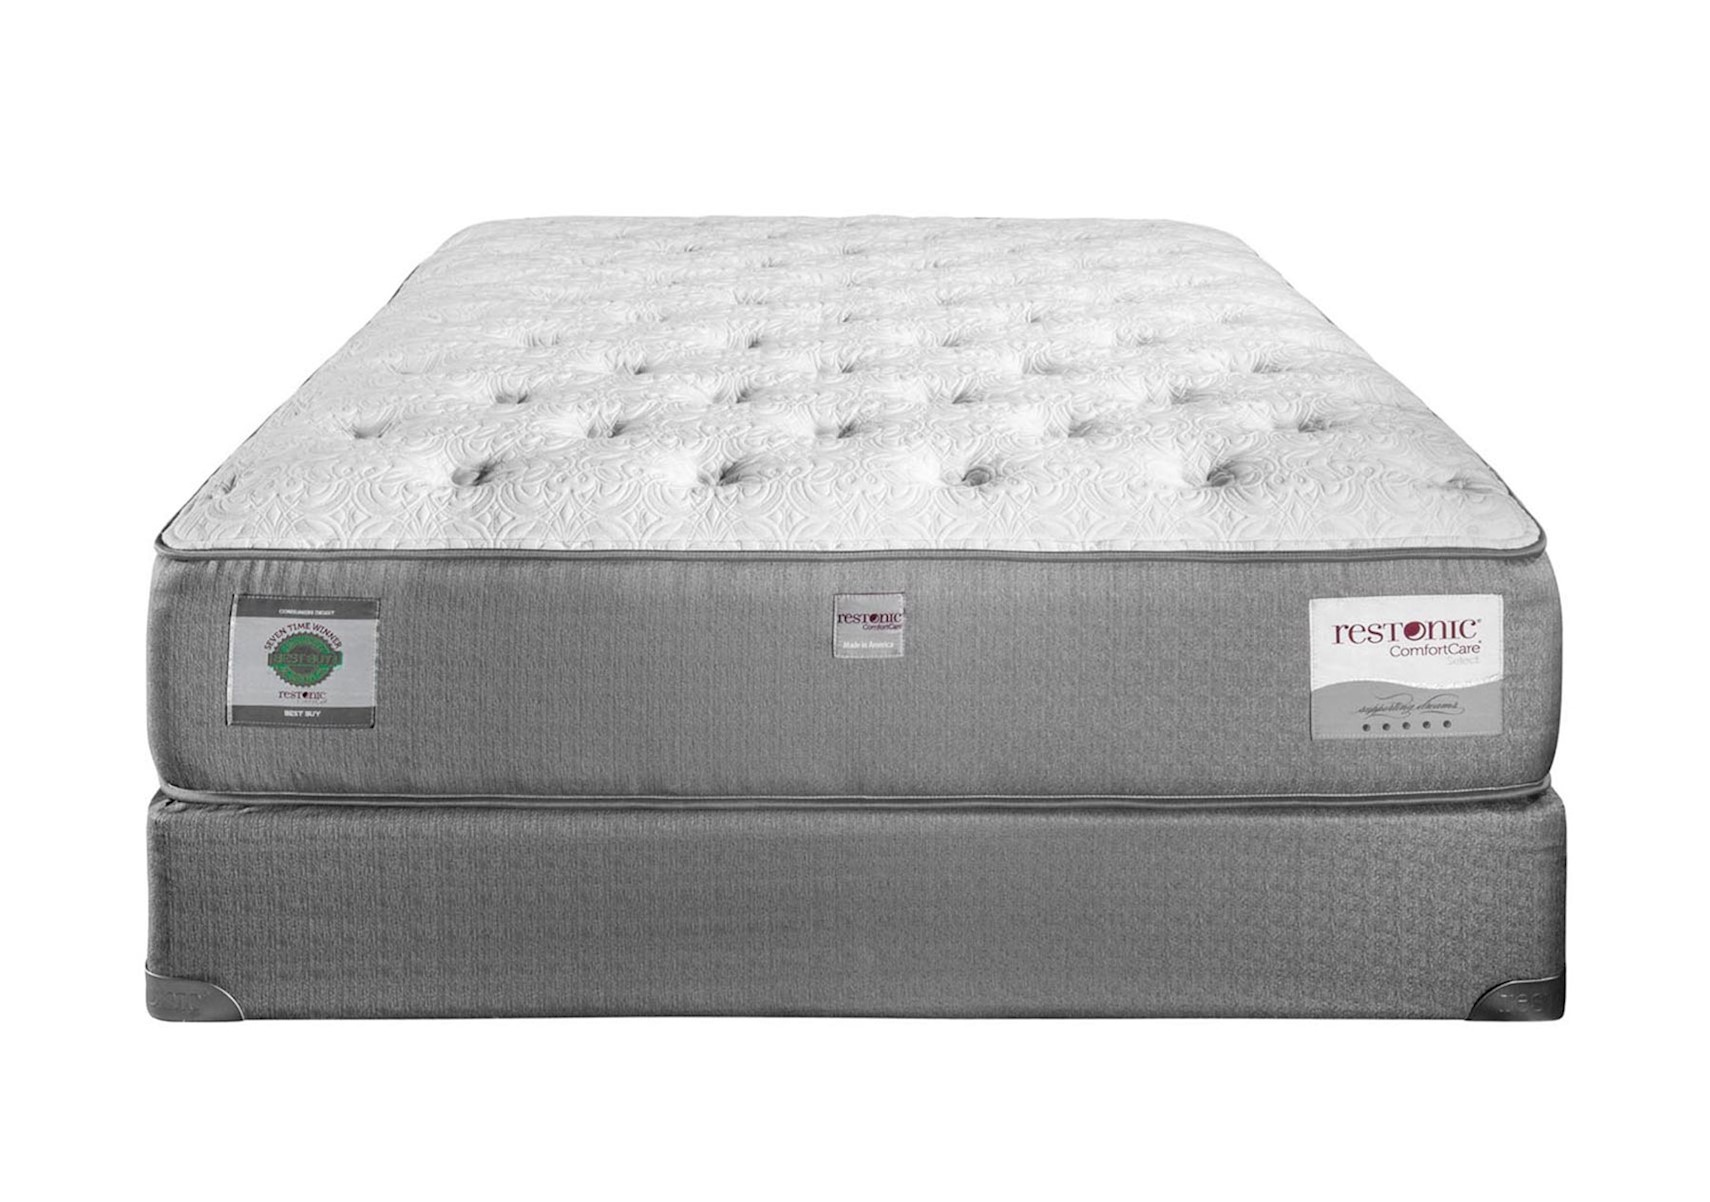 Restonic Comfortcare Select Kingsbury Luxury Firm Queen Mattress Set